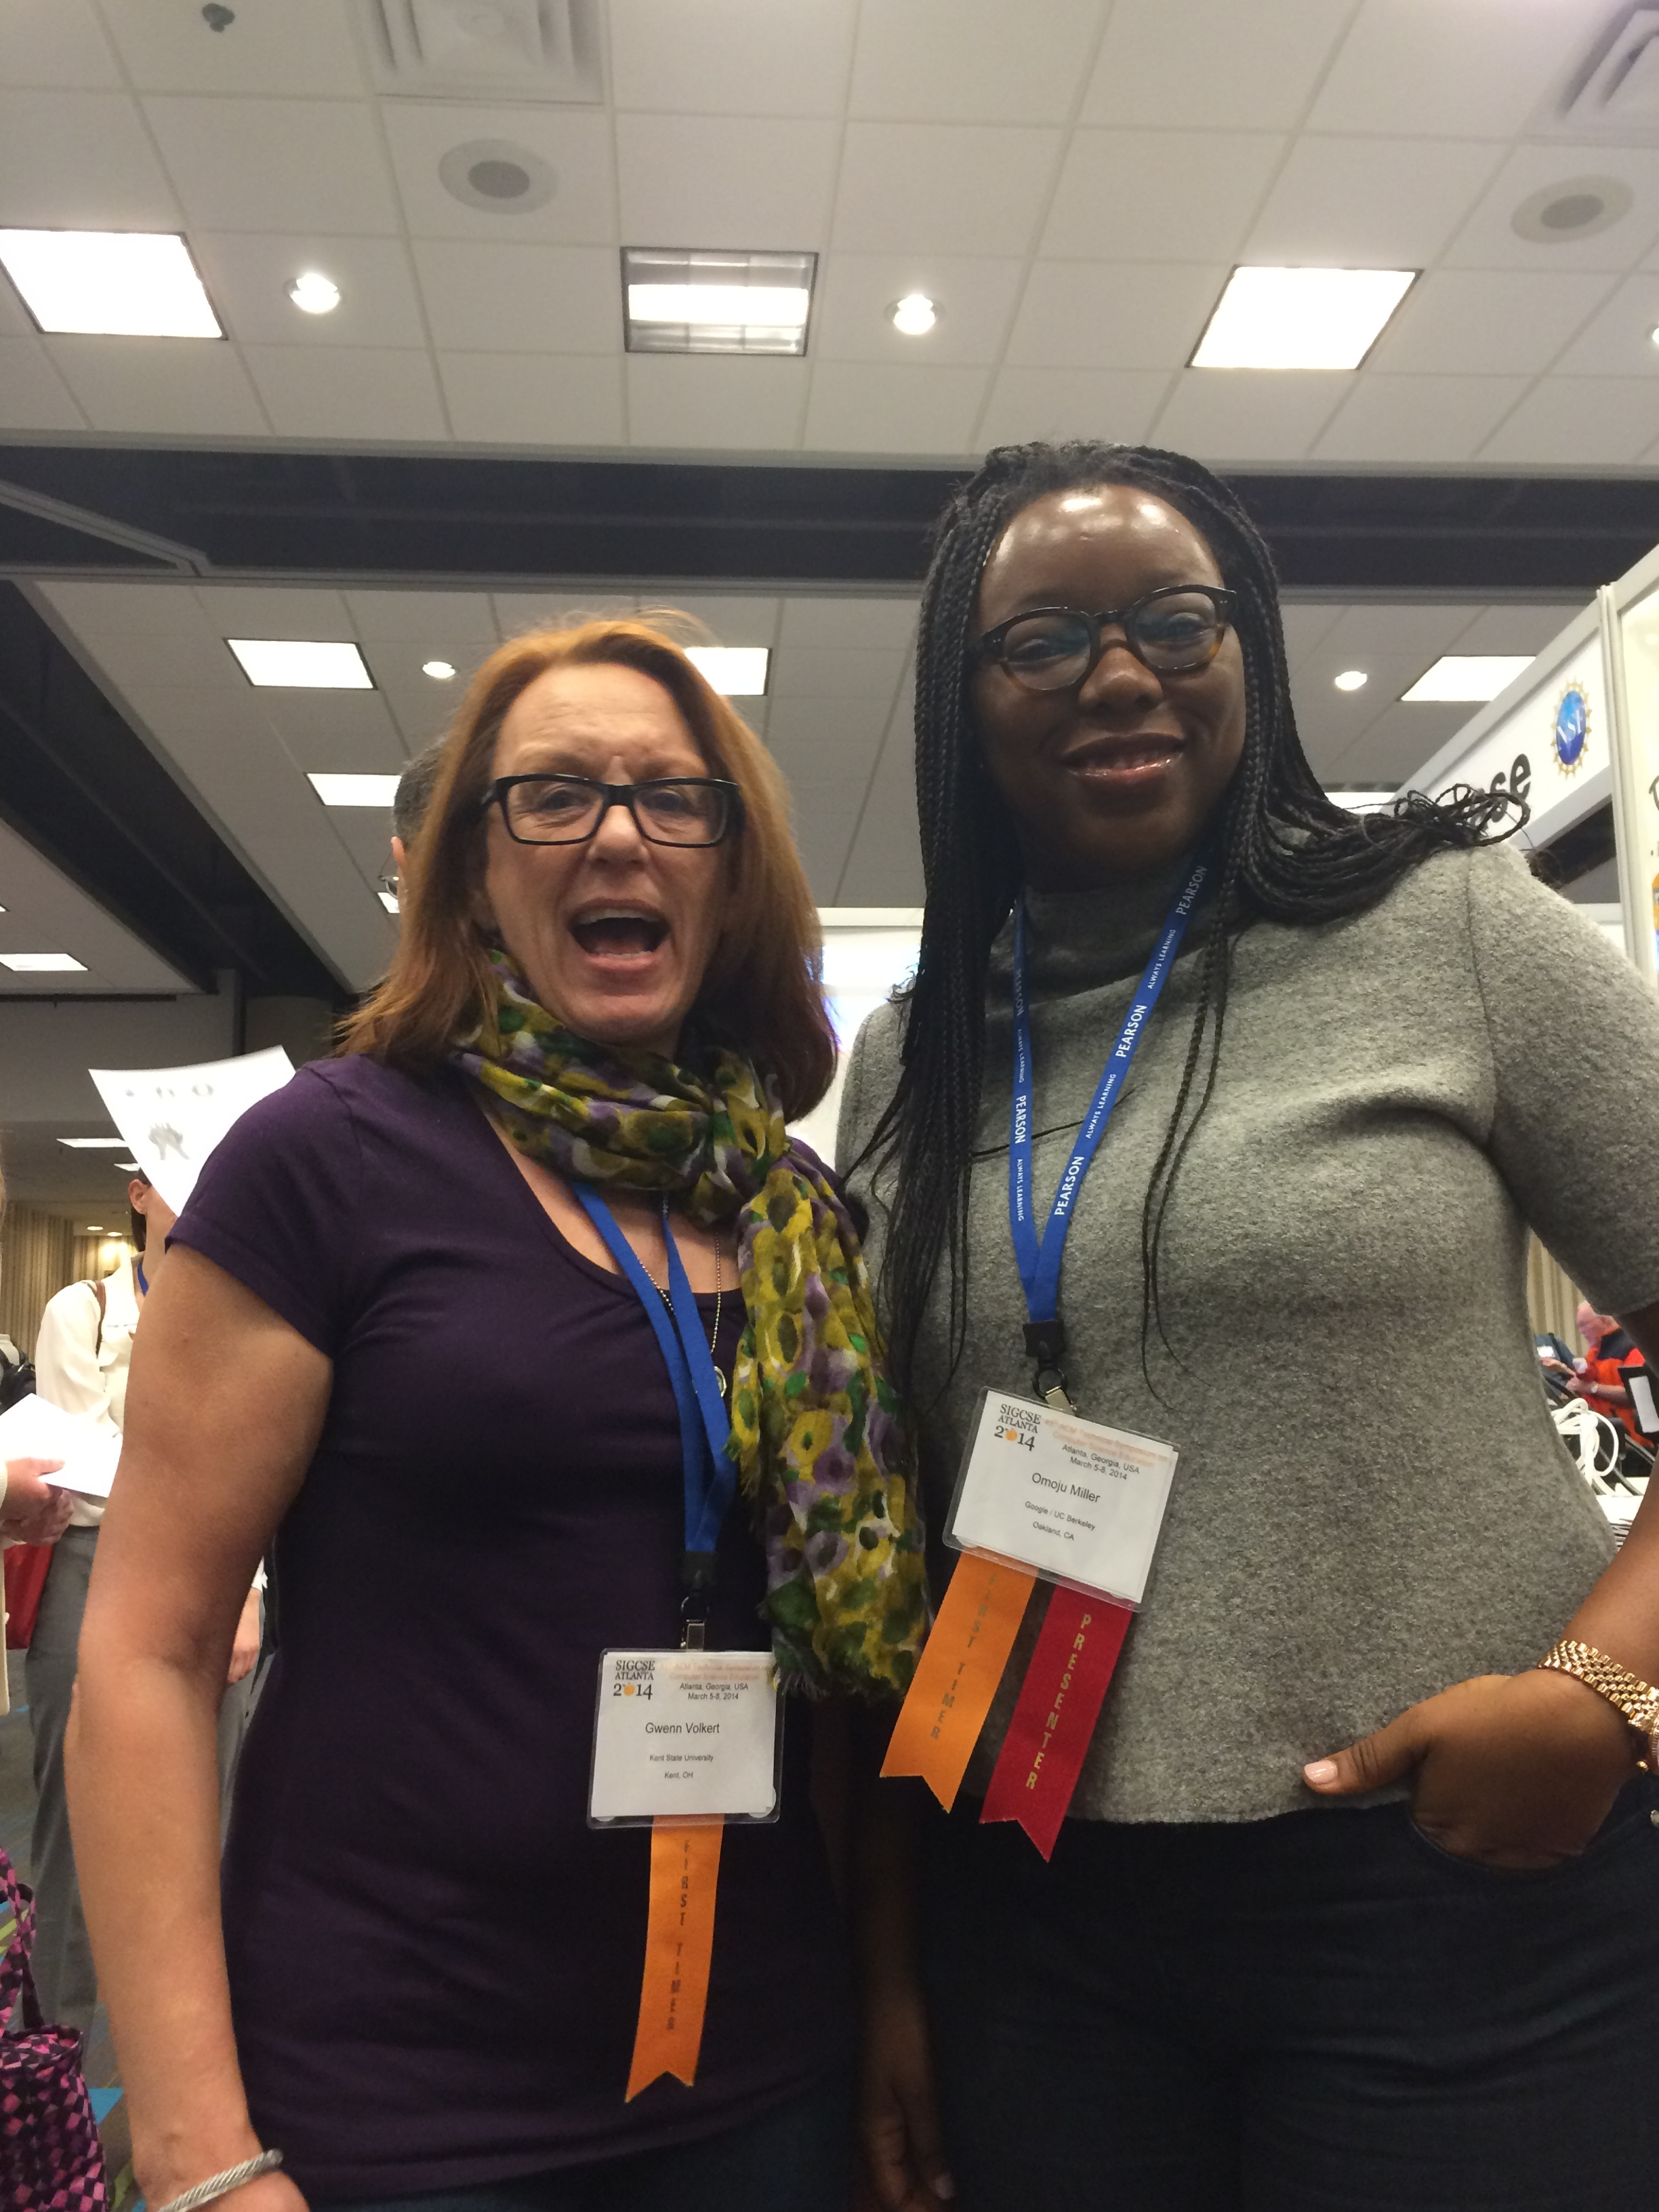 Omoju reuniting with Gwenn Volkert at SIGCSE 2014, after 15 years.